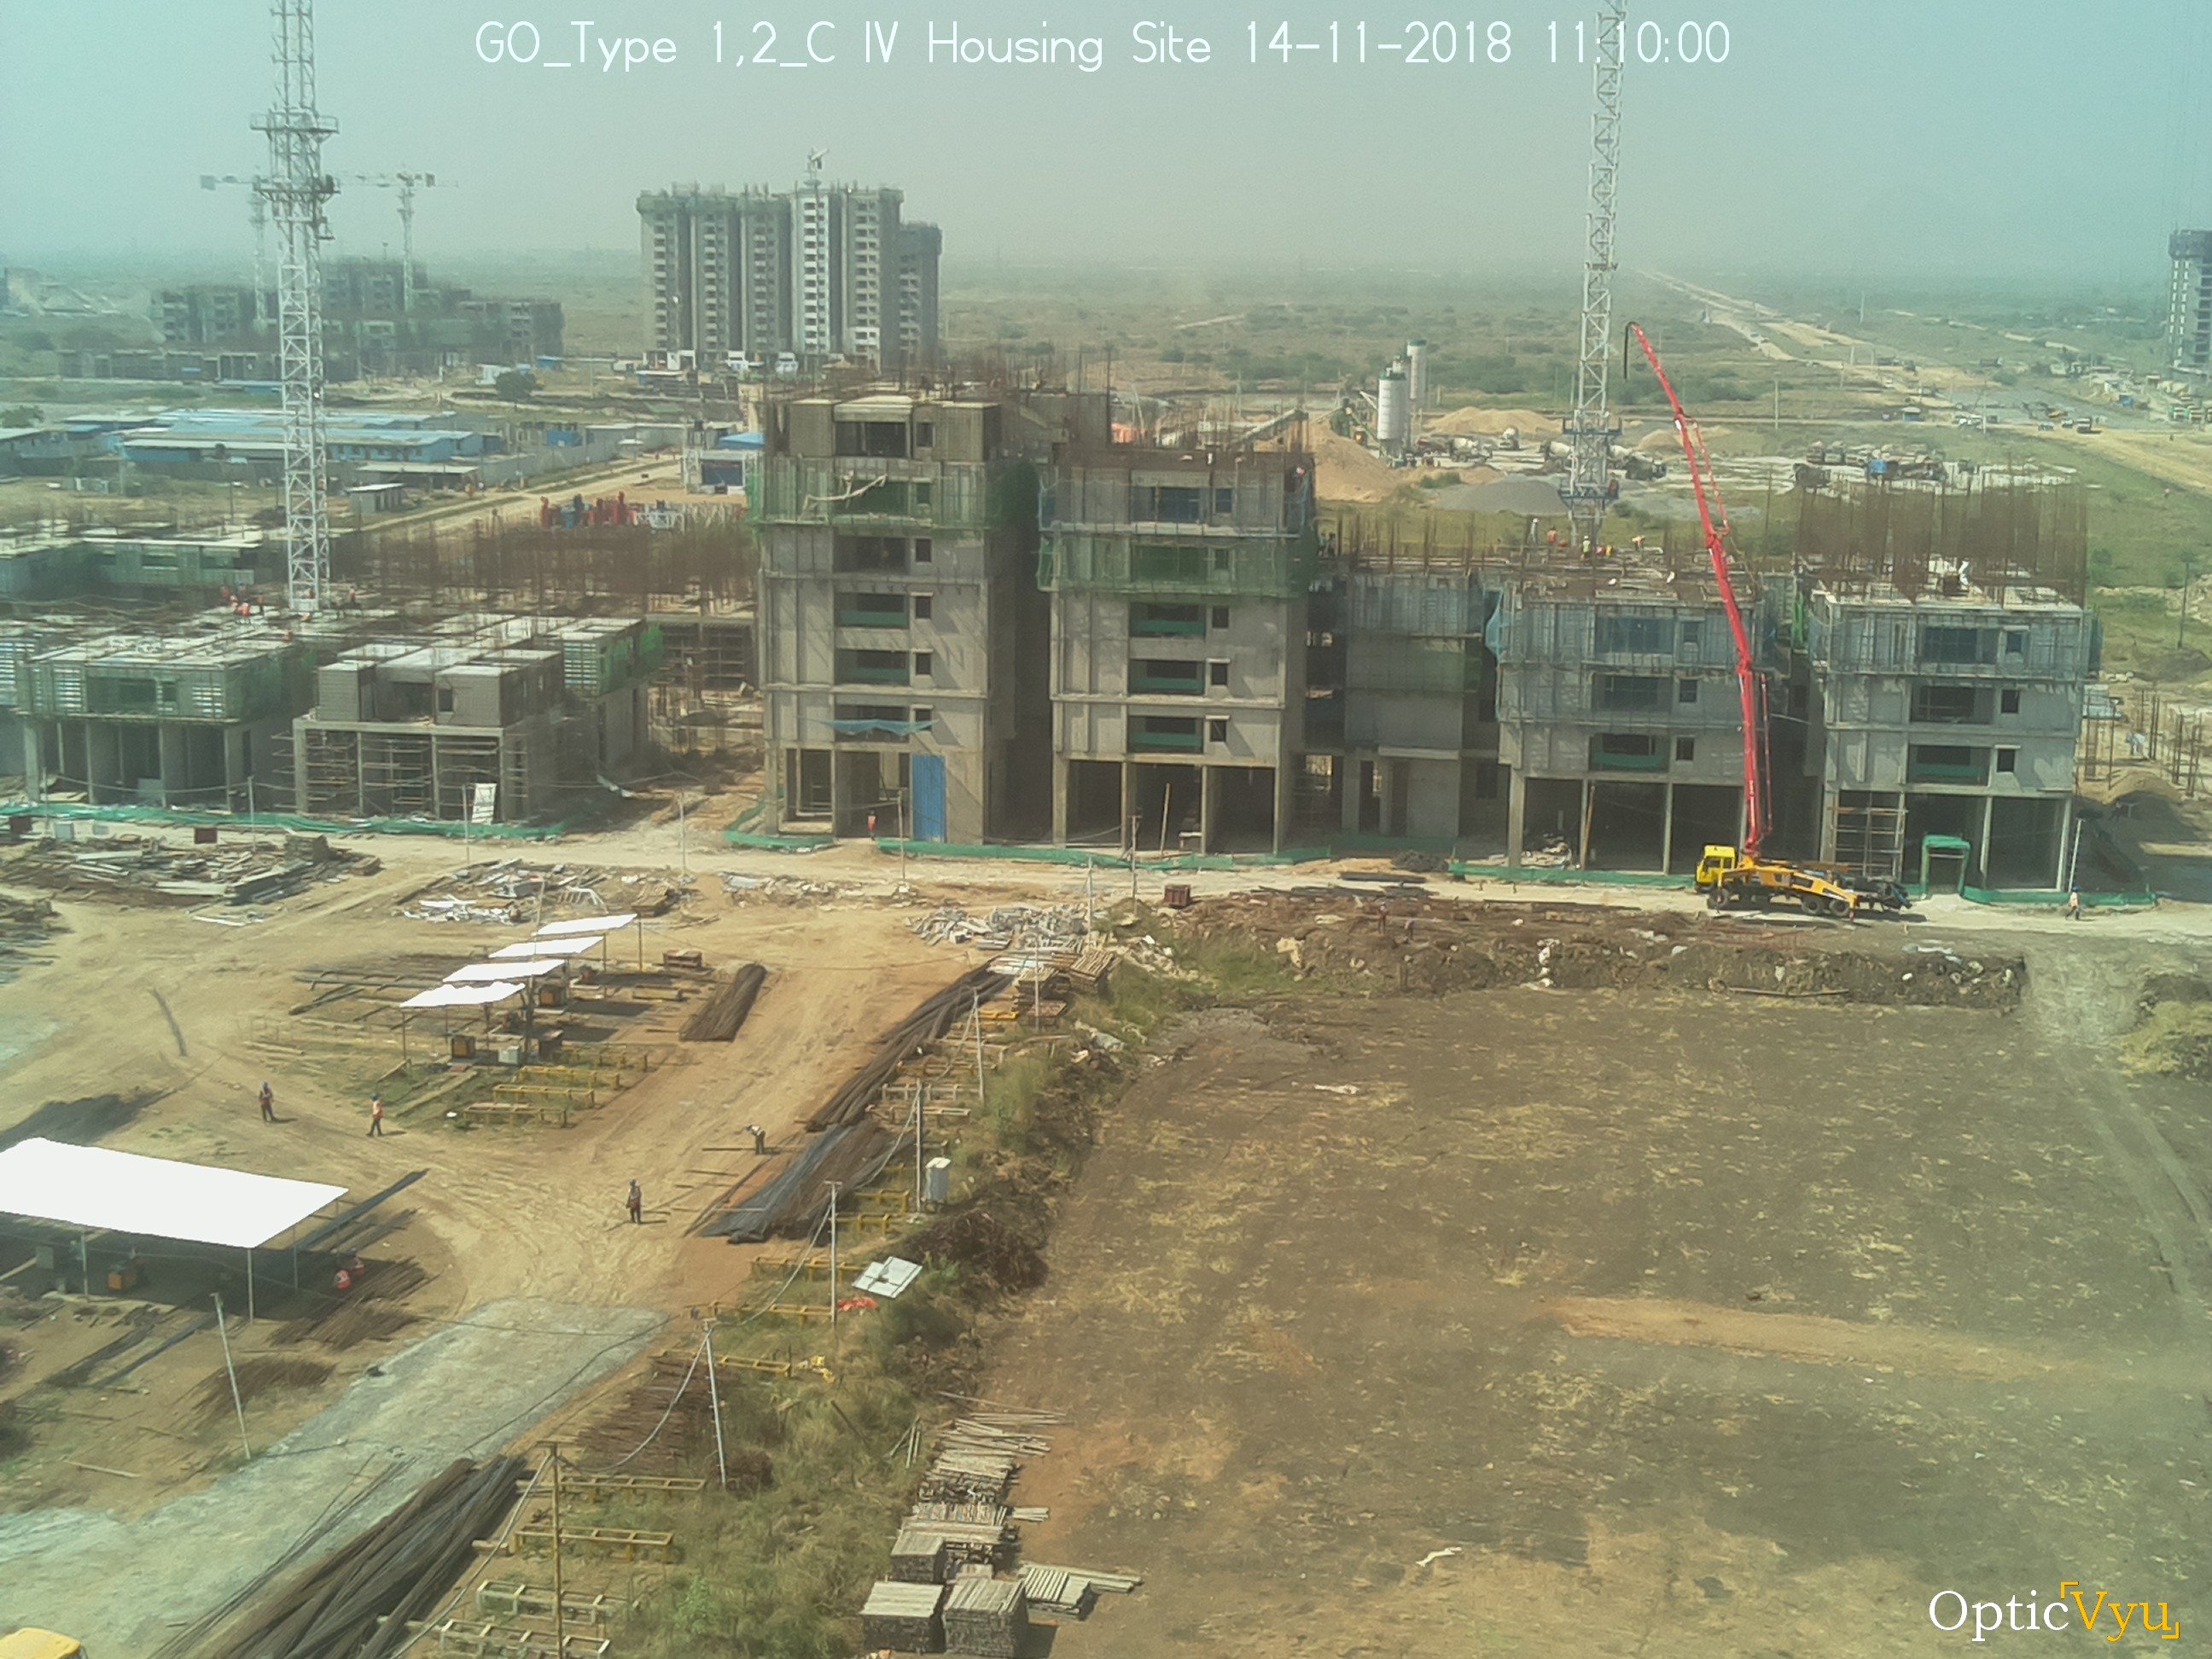 GO Type Housing Site Construction Camera Picture